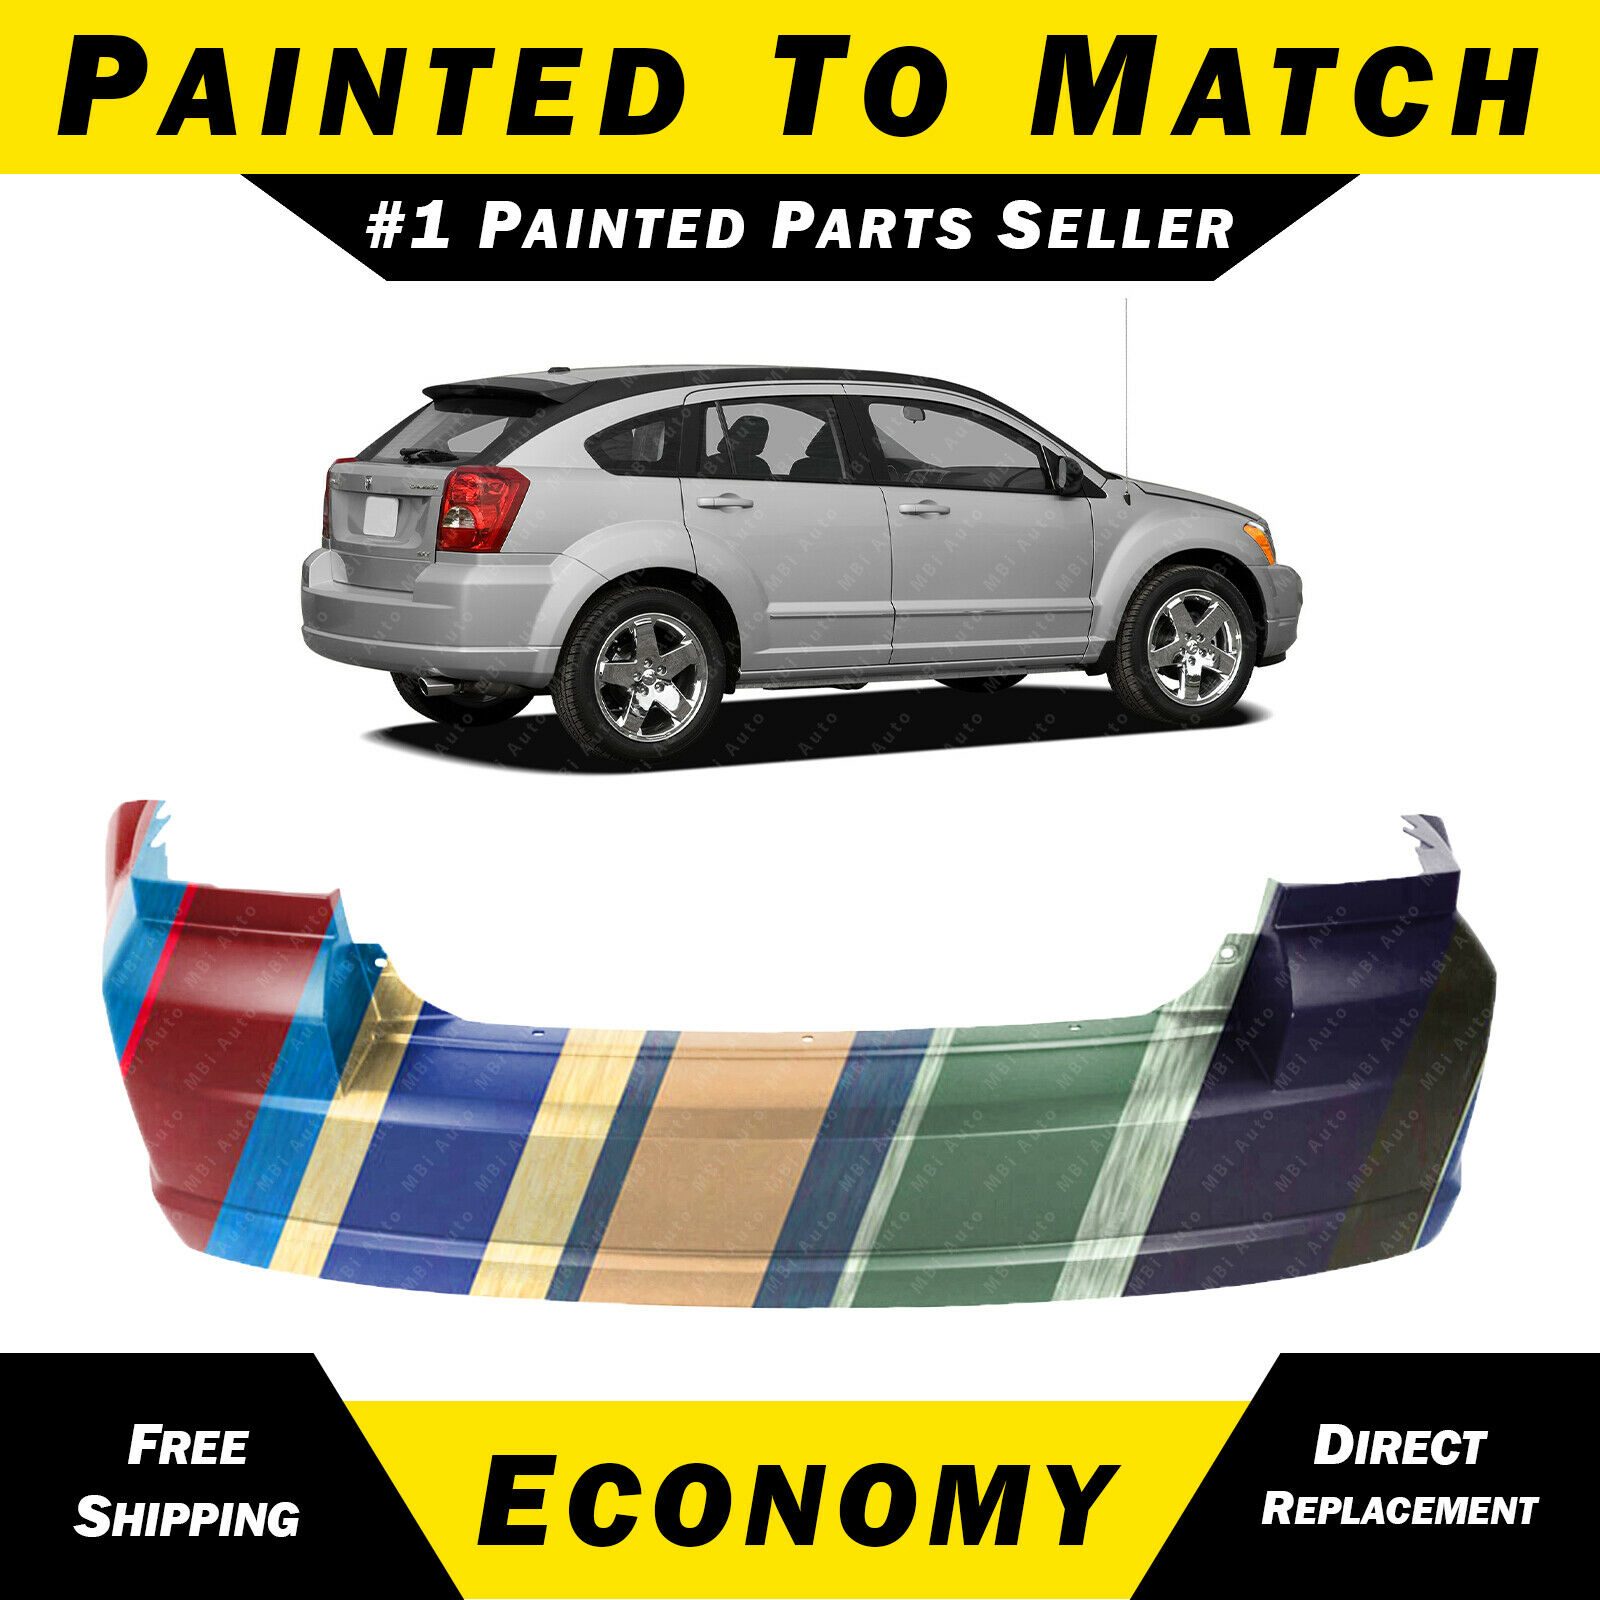 NEW Painted To Match - Rear Bumper Cover for 2007-2012 Dodge Caliber  YC95TZZAA 1 of 5FREE Shipping See More